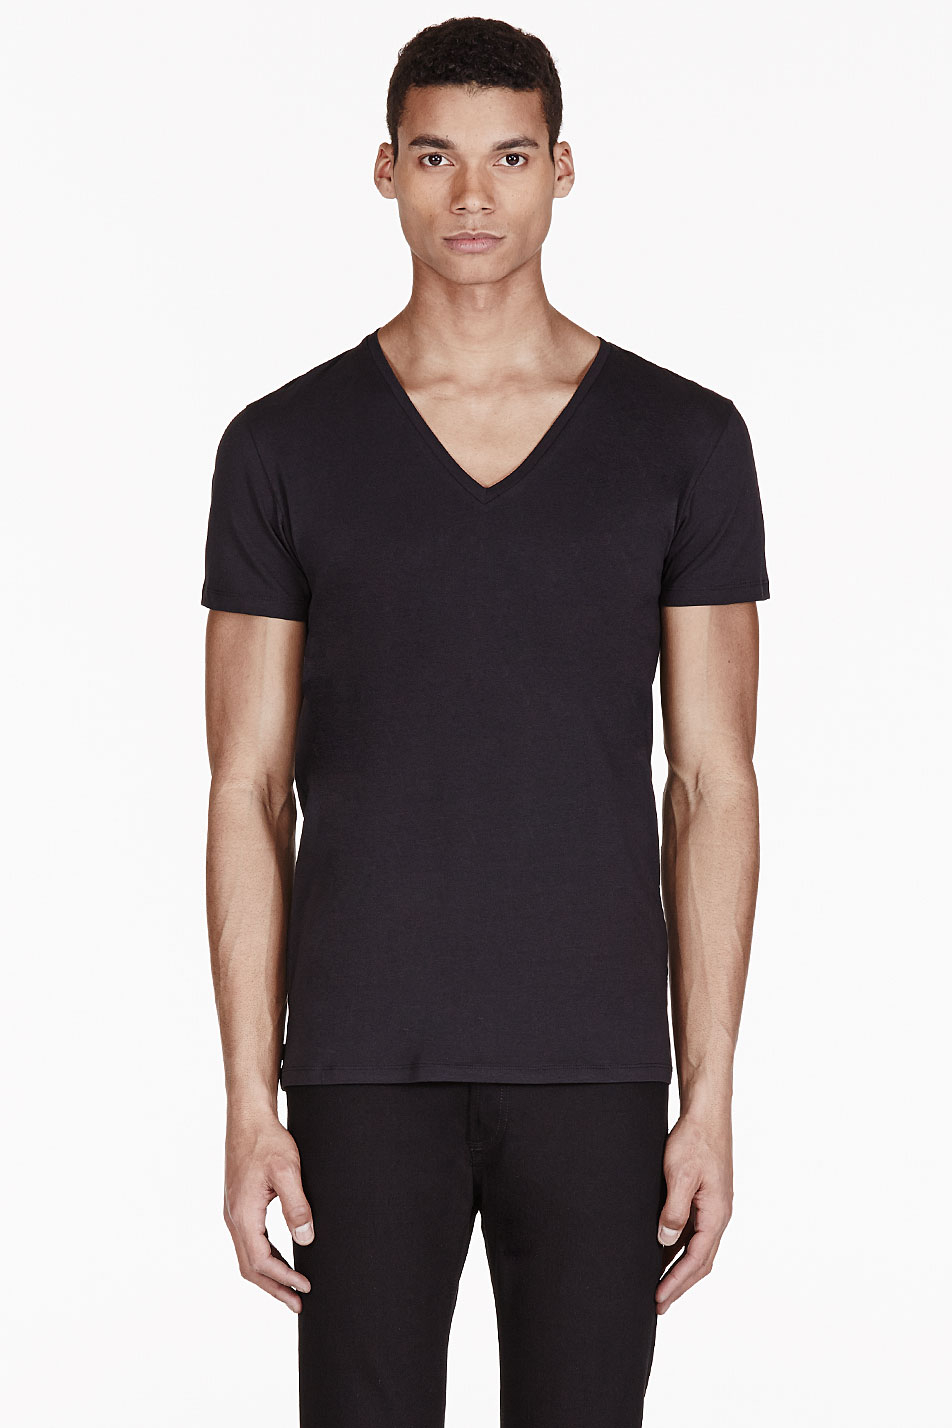 Diesel black v neck umtee jesse t shirt in black for men V neck black t shirt